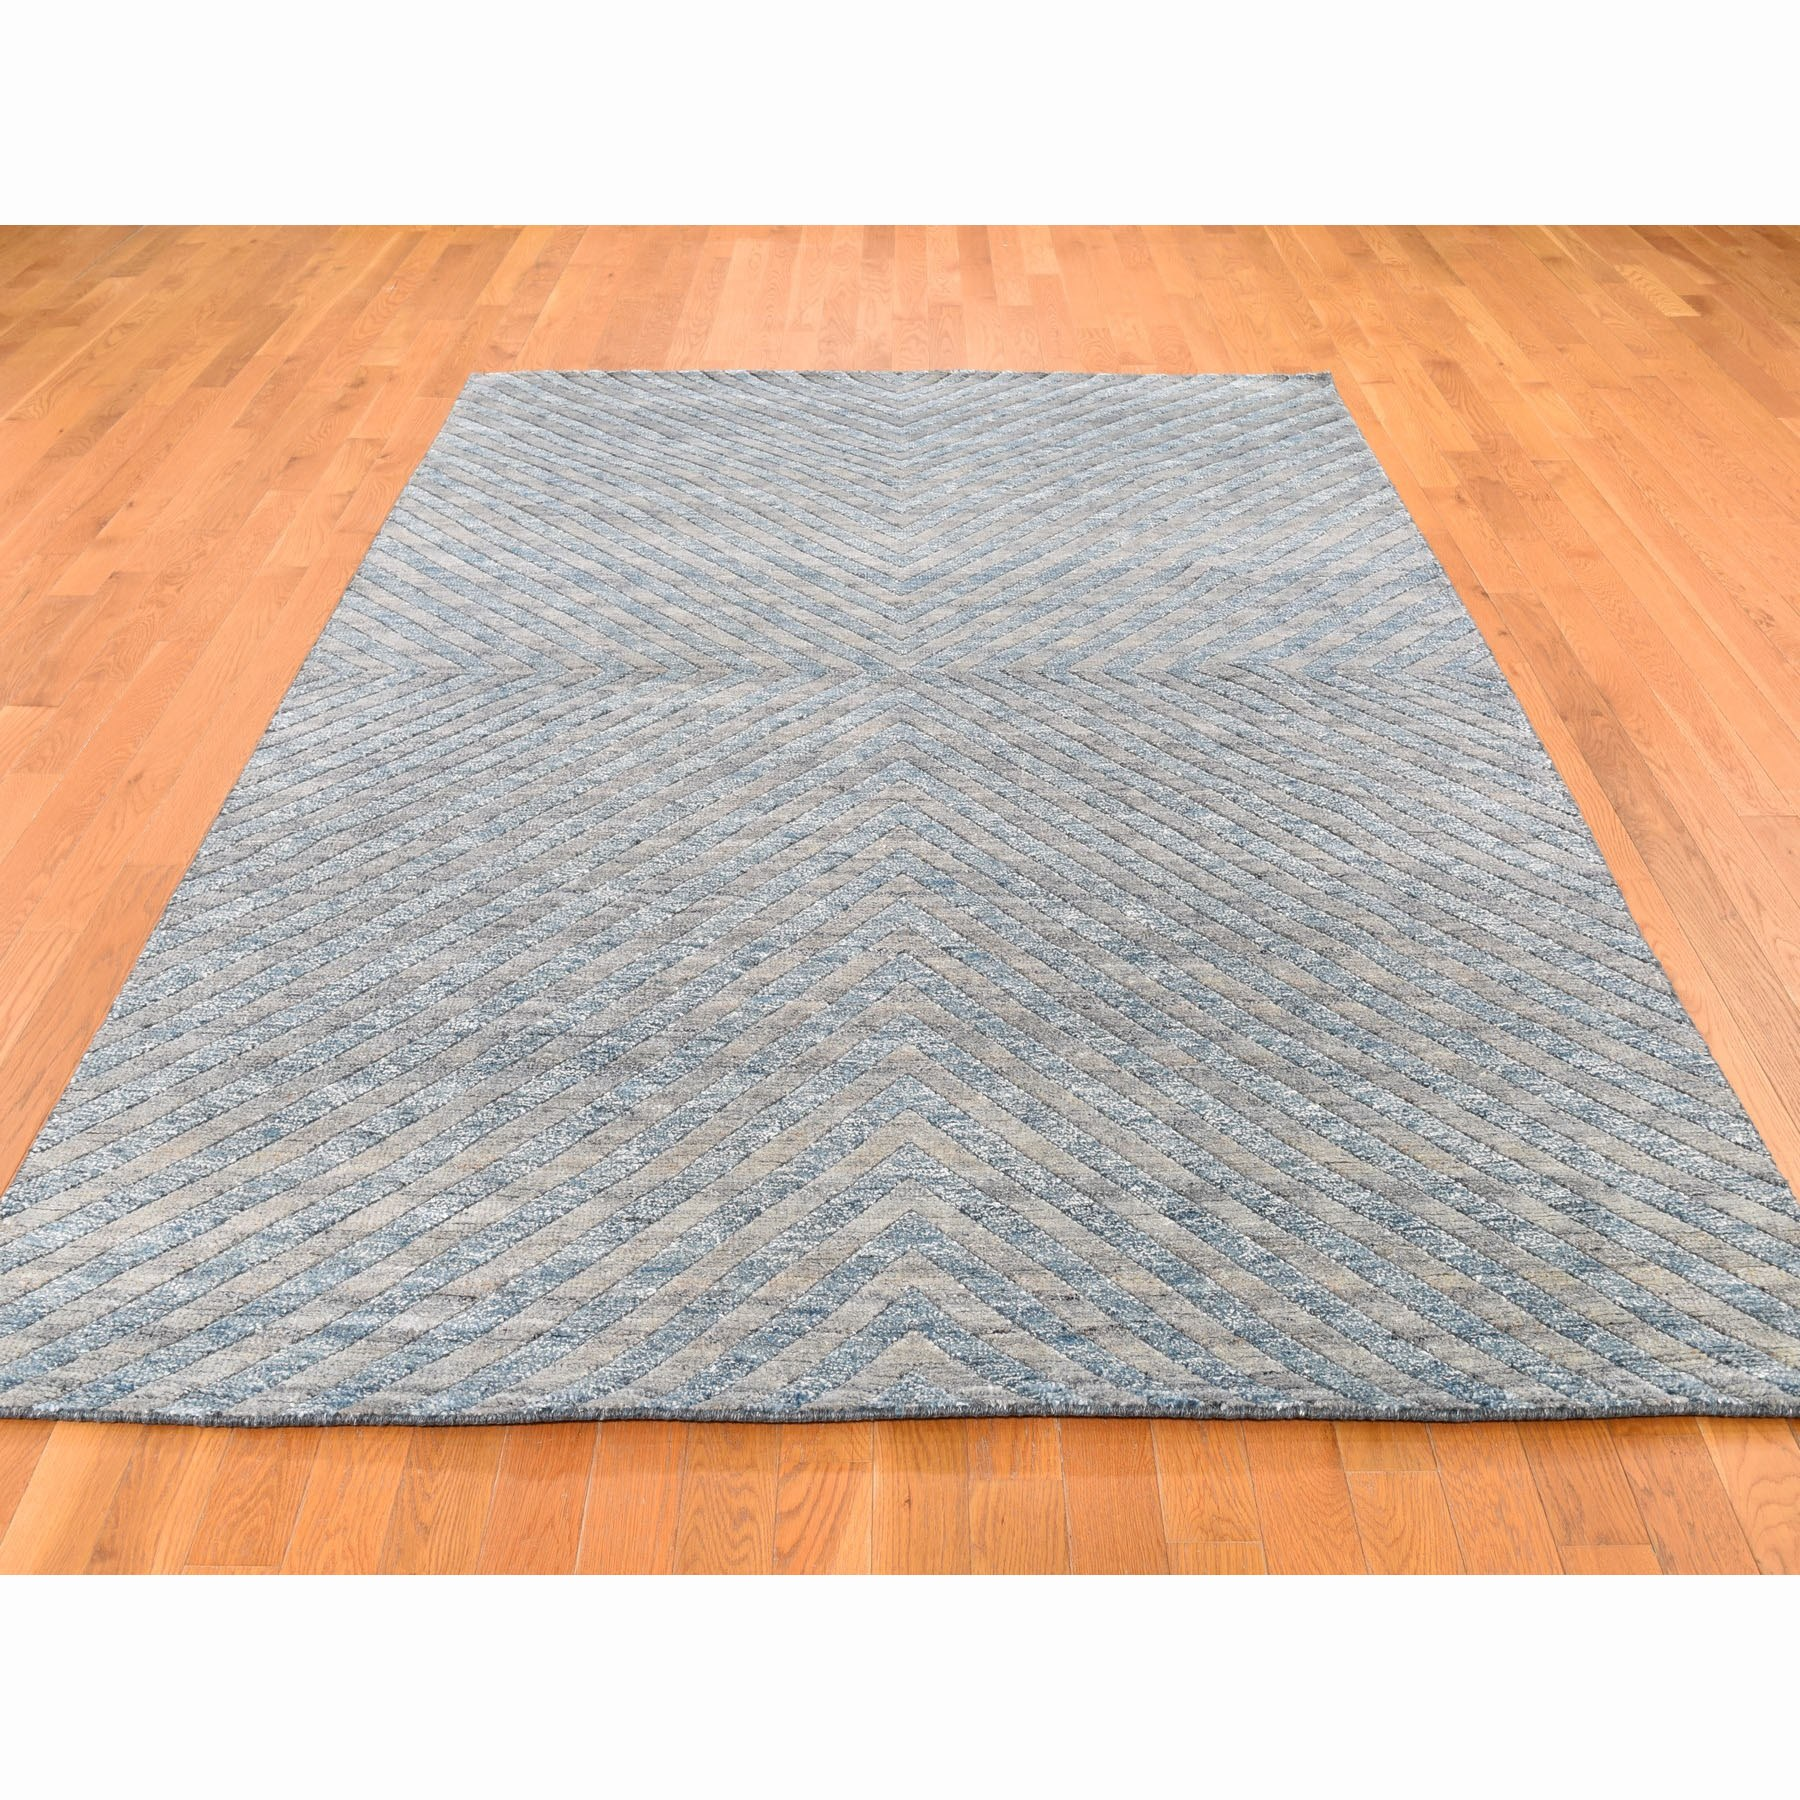 """6'1""""x9' Blue Pure Wool Geometric Design Hand Knotted Modern Thick And Plush Oriental Rug"""